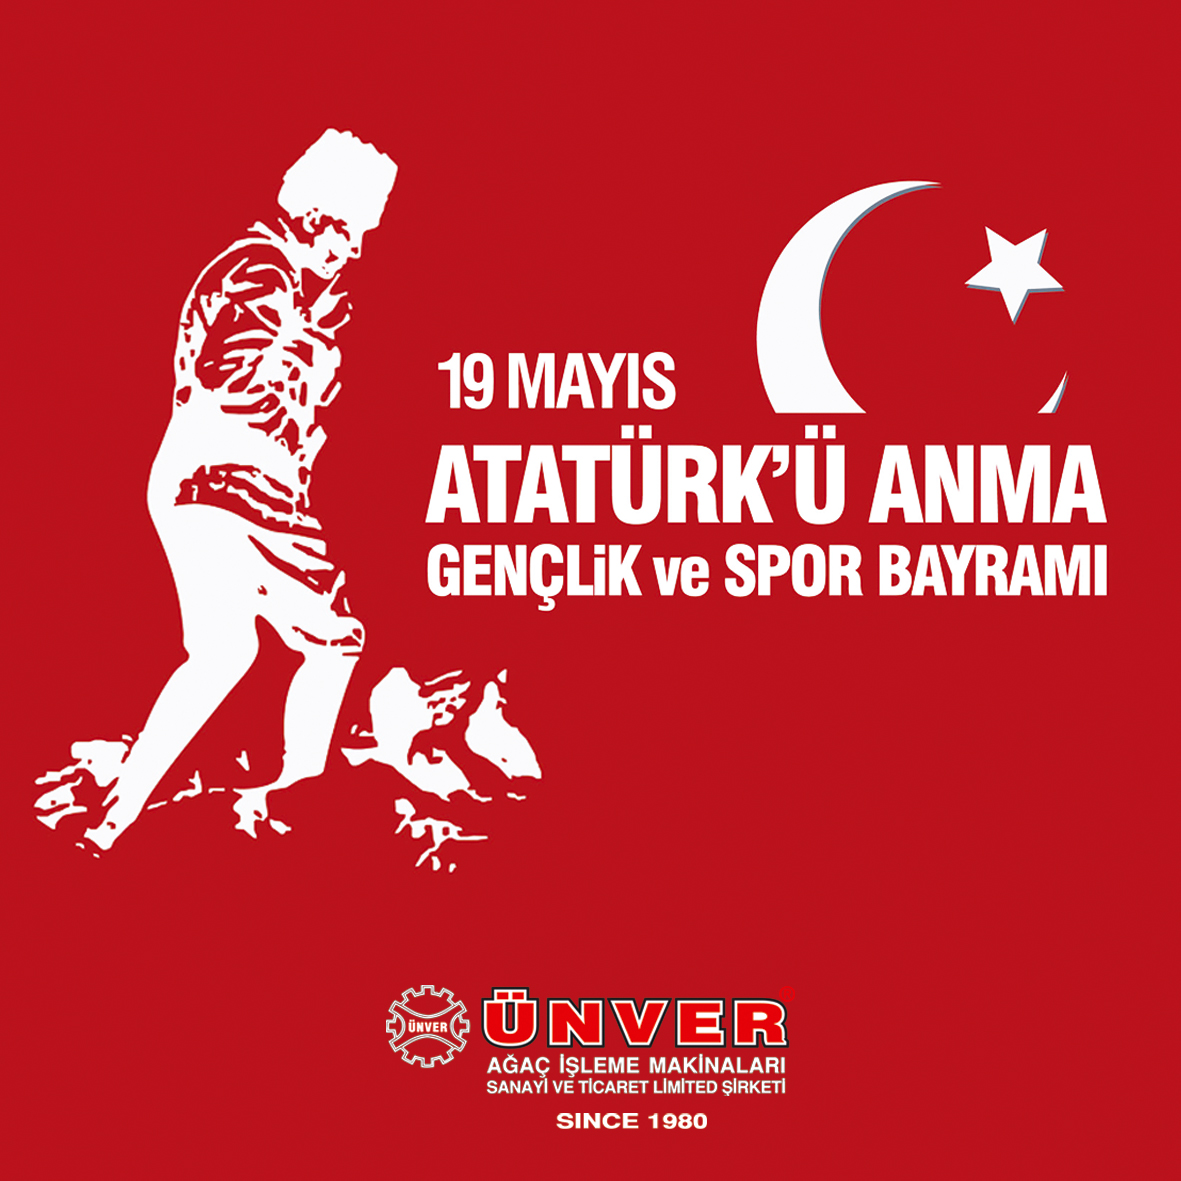 99776418 - may 19th, ataturk memorial youth and sports festival banner.